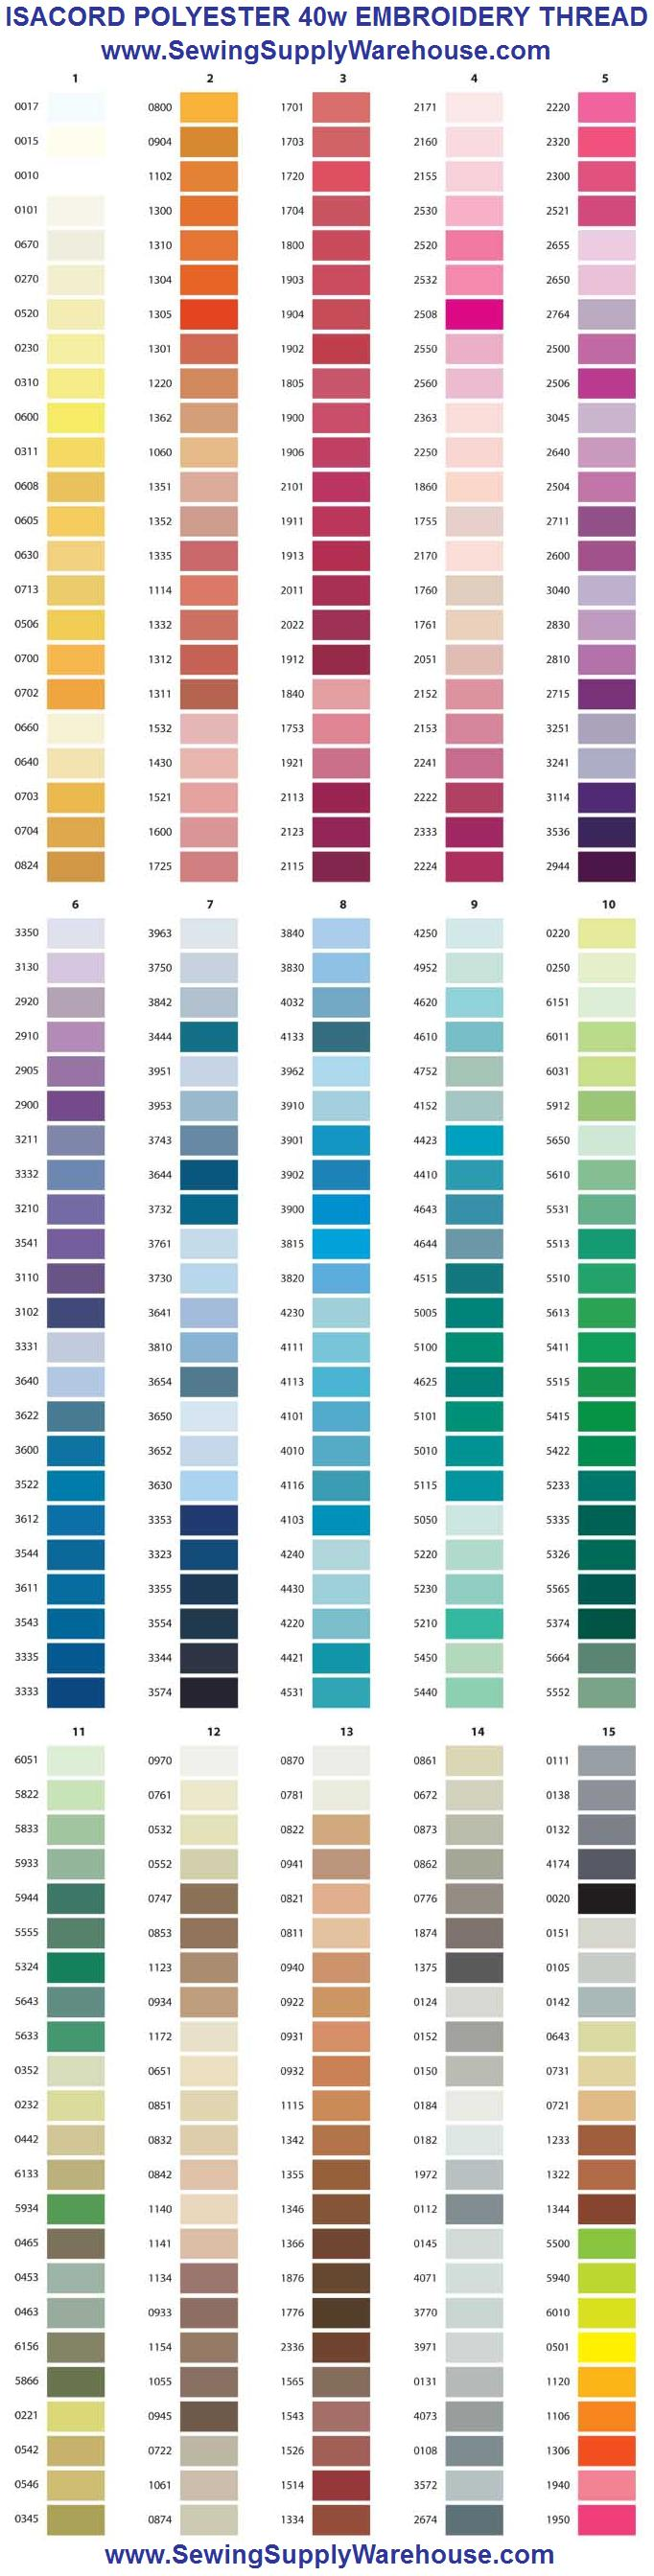 Royal embroidery thread color chart embroidery thread color free thread chart downloads pdf and other files nvjuhfo Gallery